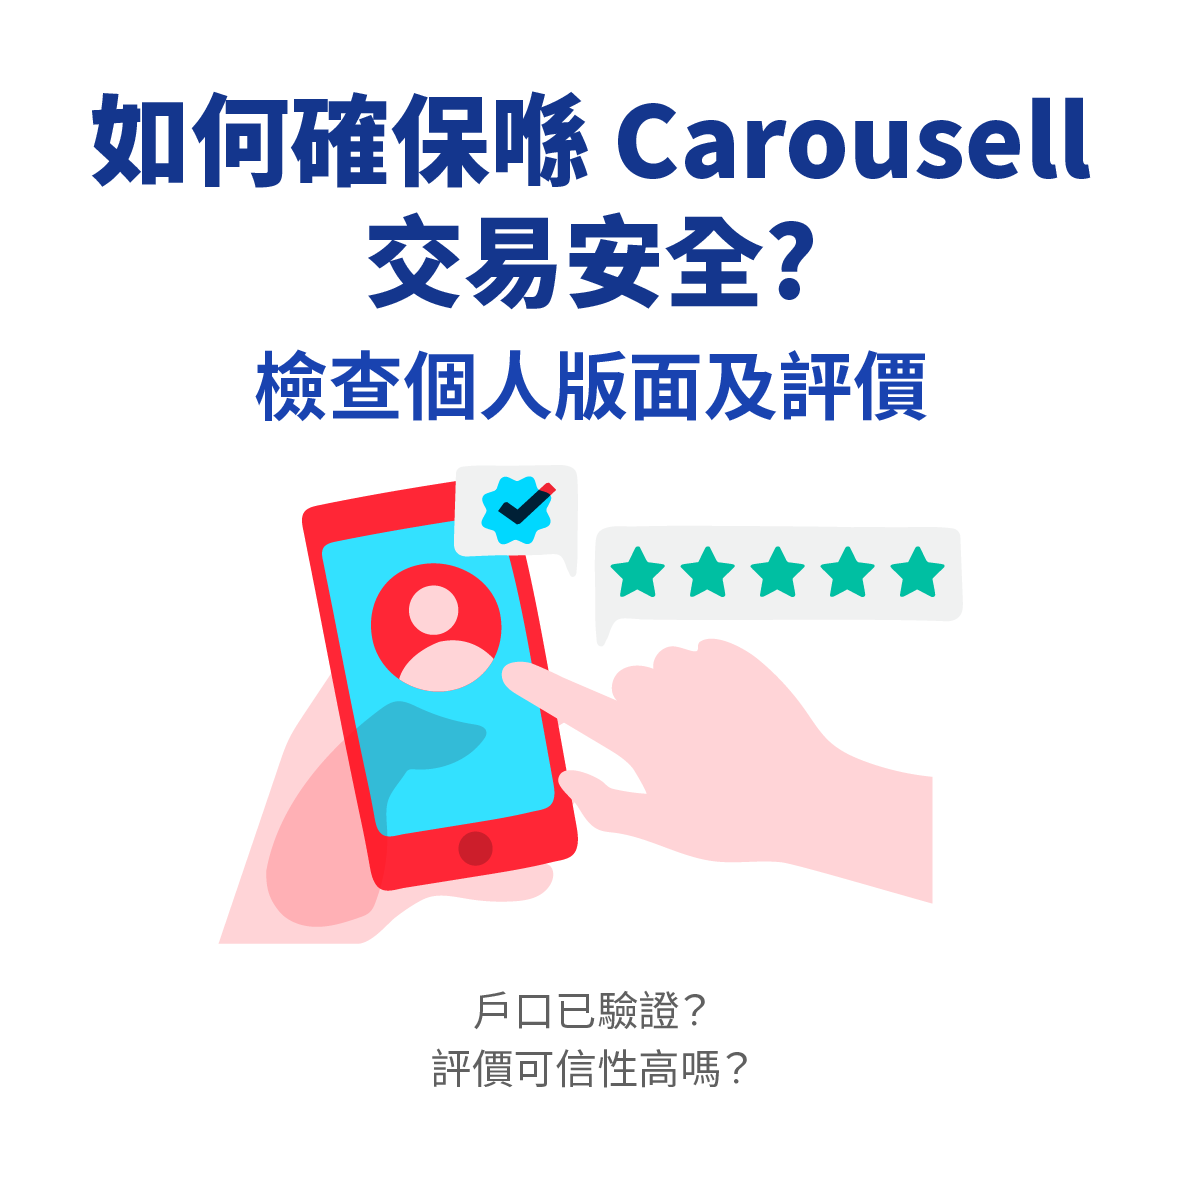 HelpCentre_How-to-deal-safely-on-Carousell_HK-1.png